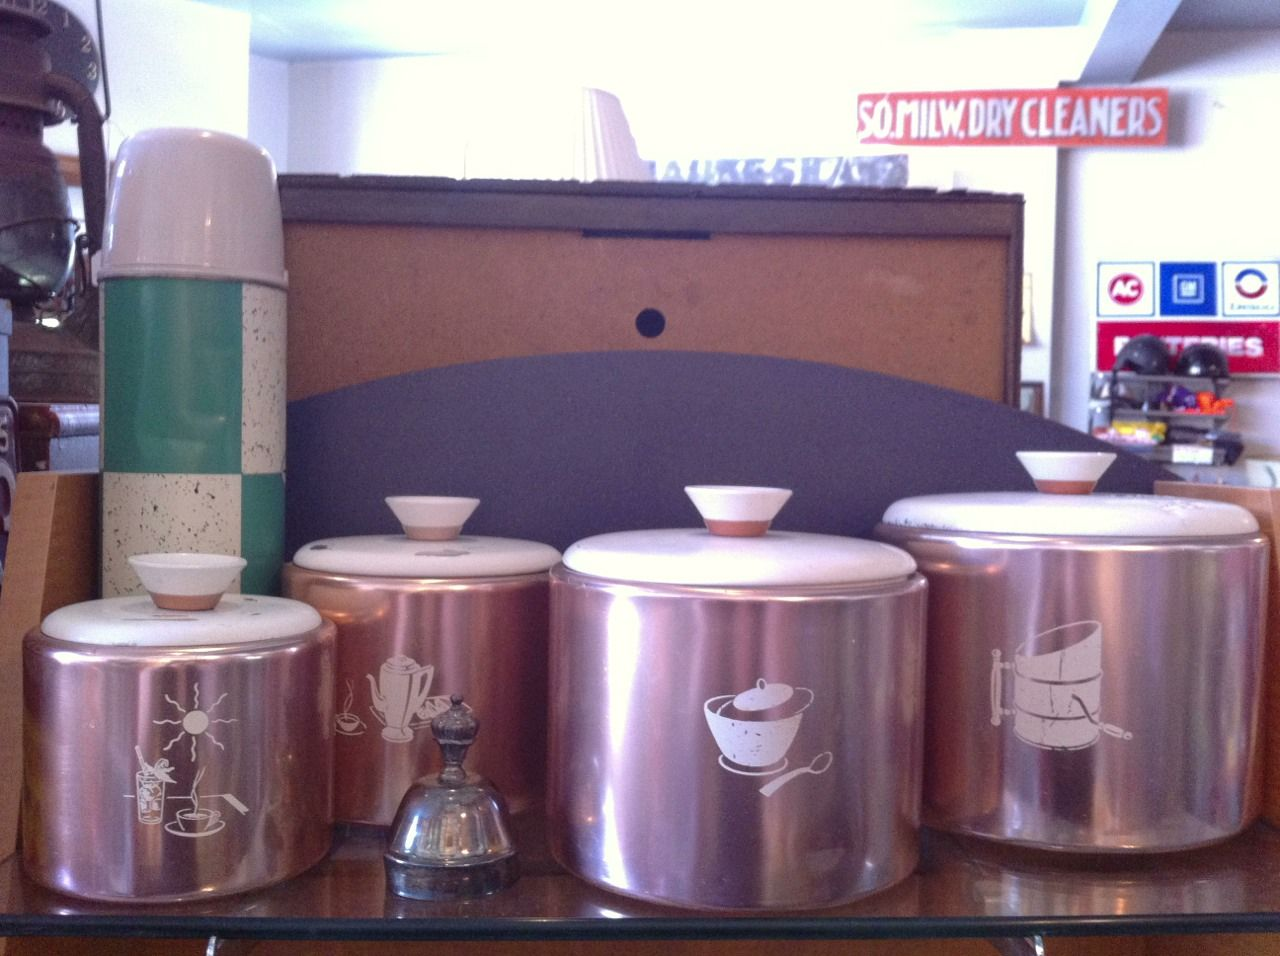 Some pretty cool looking kitchen canisters.  Great graphics.